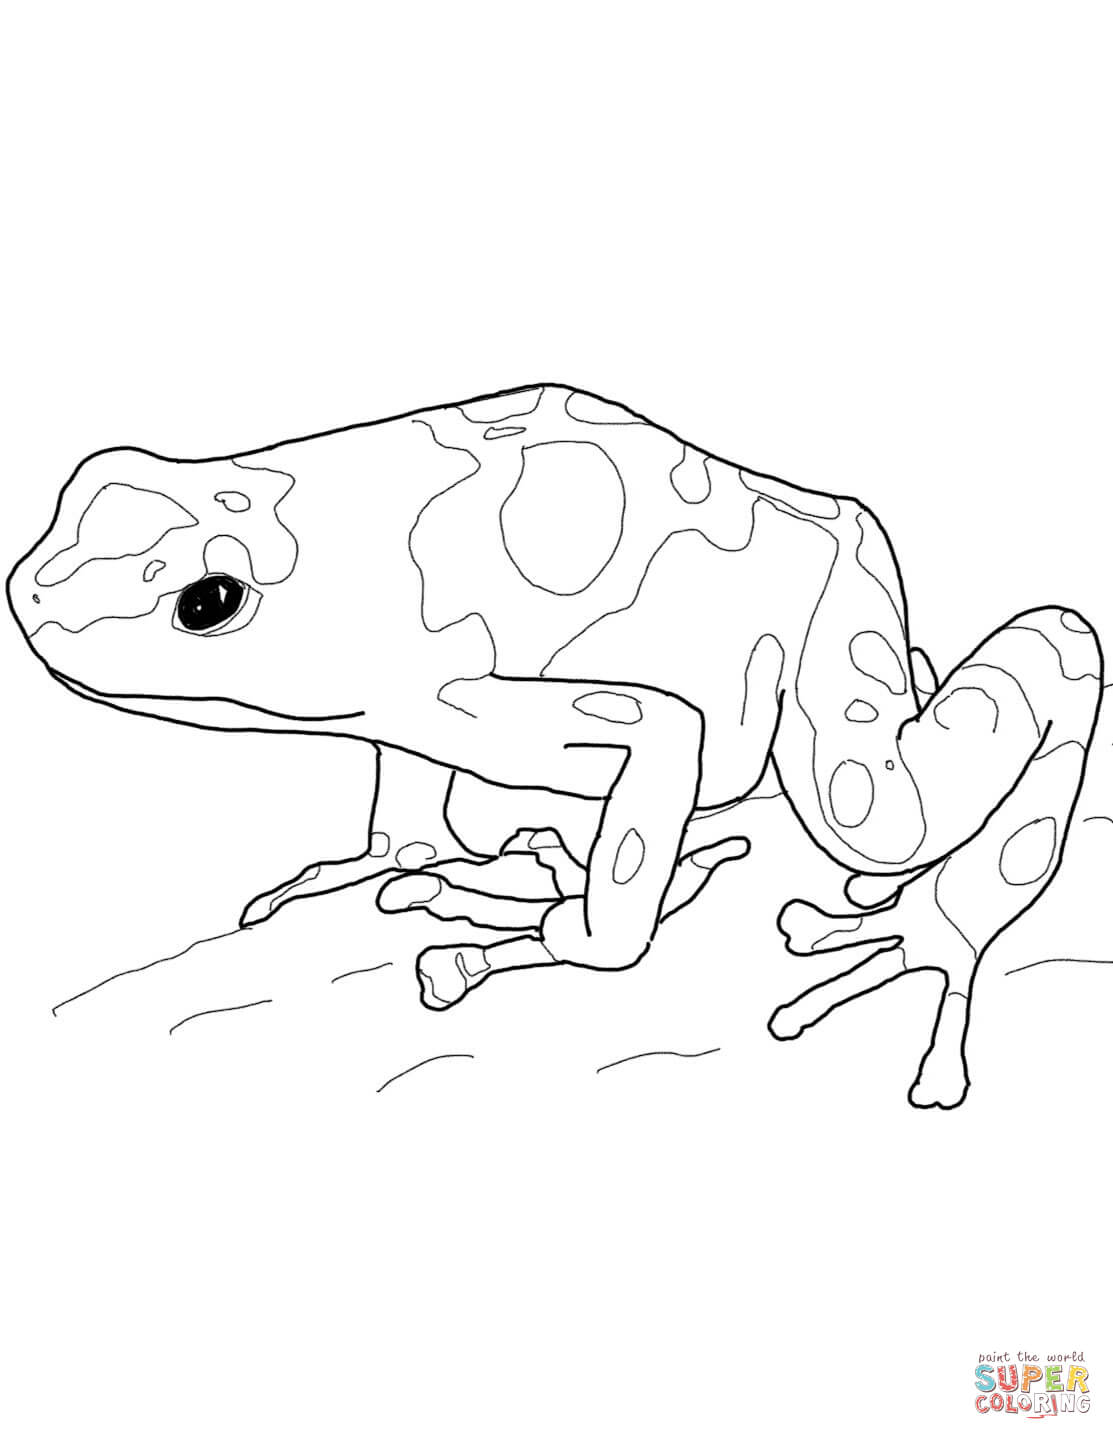 Yellow Banded Poison Dart Frog Coloring Page